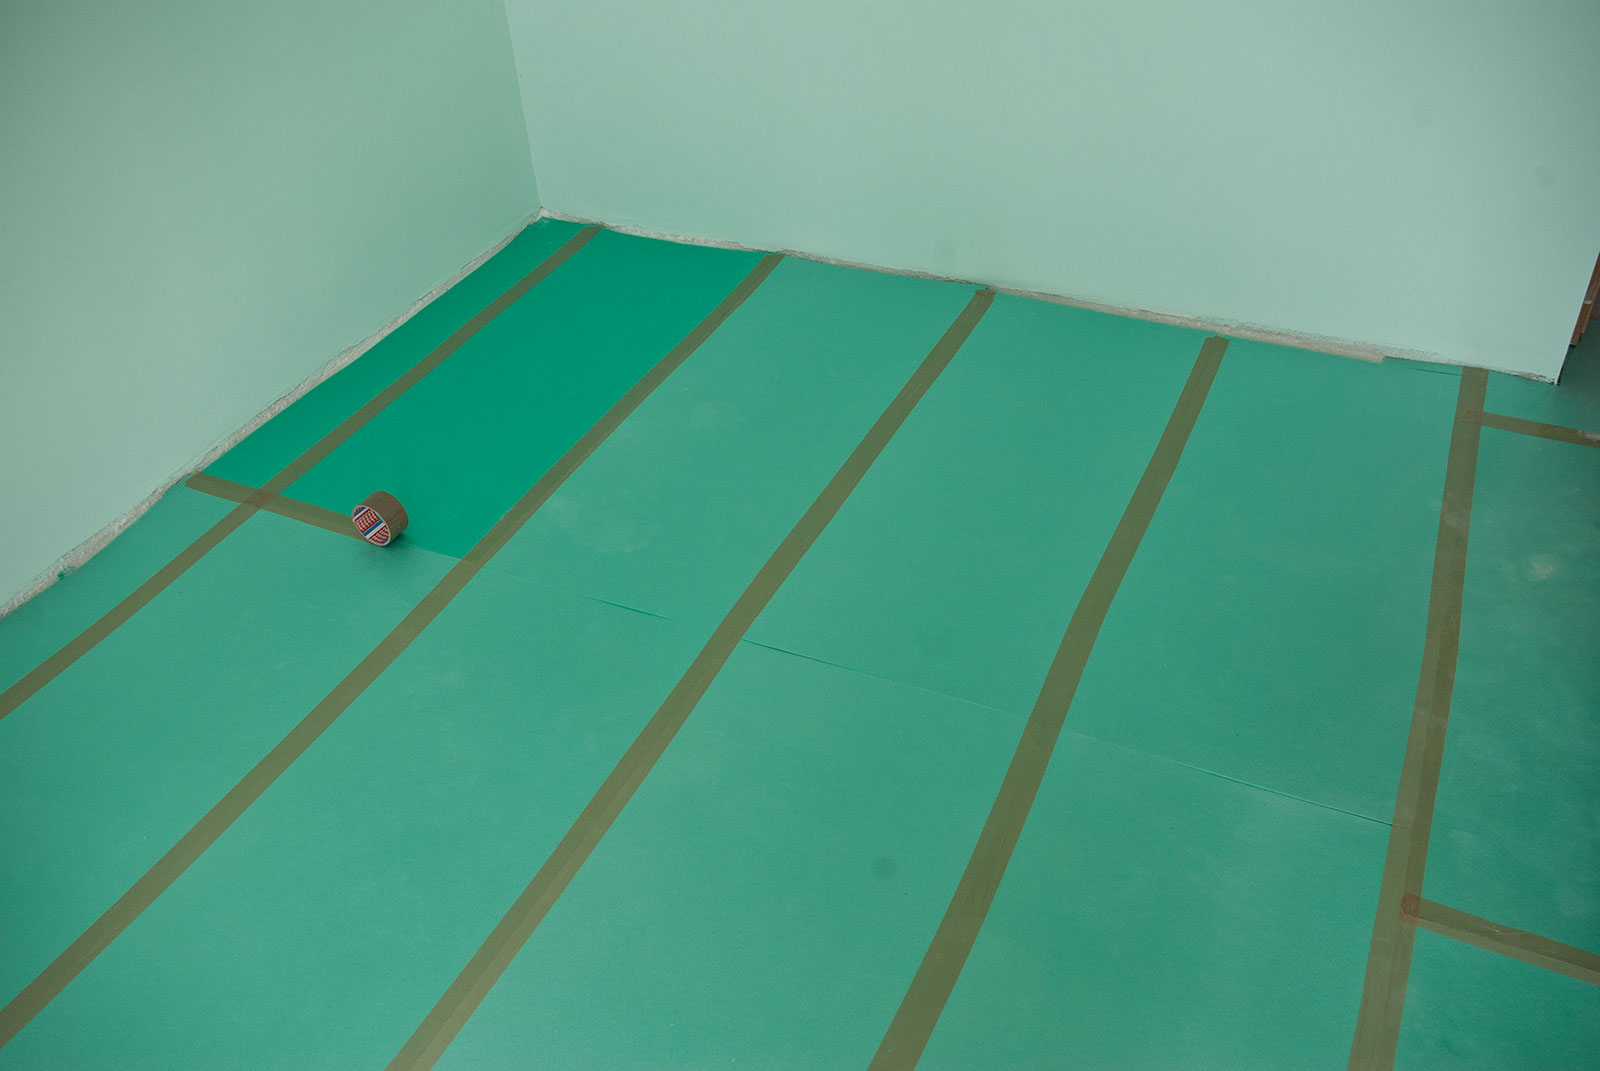 Underlay for laminate flooring with adhesive tape